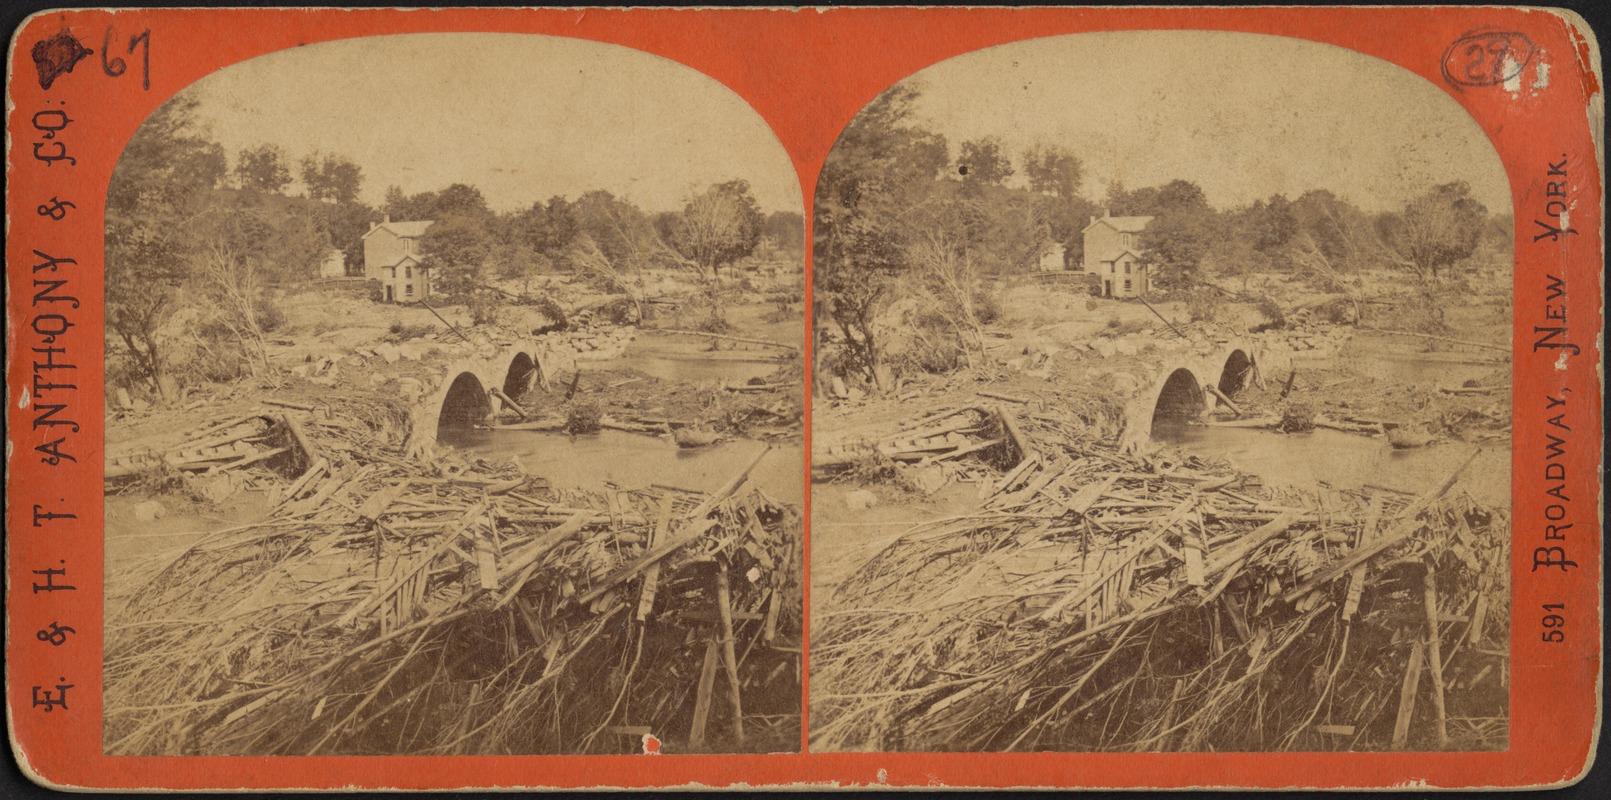 Mill River flood, Hampshire County, Mass., May 16, 1874